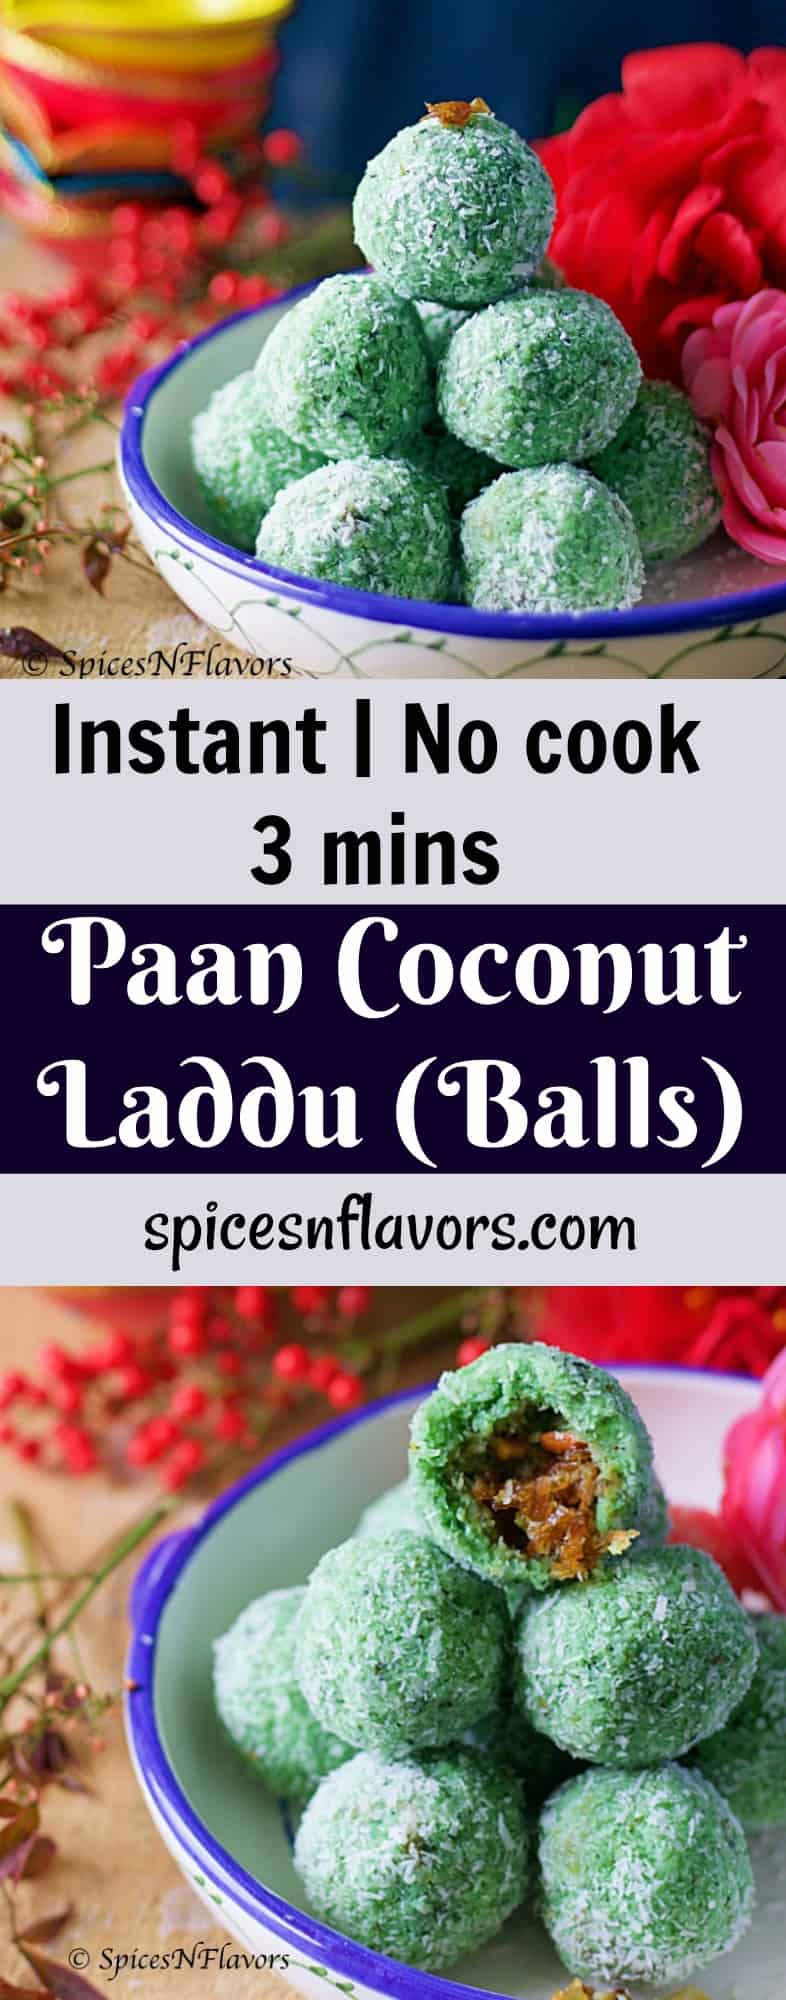 Paan Coconut Laddu, paan laddu, paan laddo, paan coconut laddo, instant laddu, instant laddo, instant coconut laddu, no cook laddu, easy laddu, easy indian sweet, no cook instant laddu, no cook instant paan coconut laddu, how to make laddu at home,